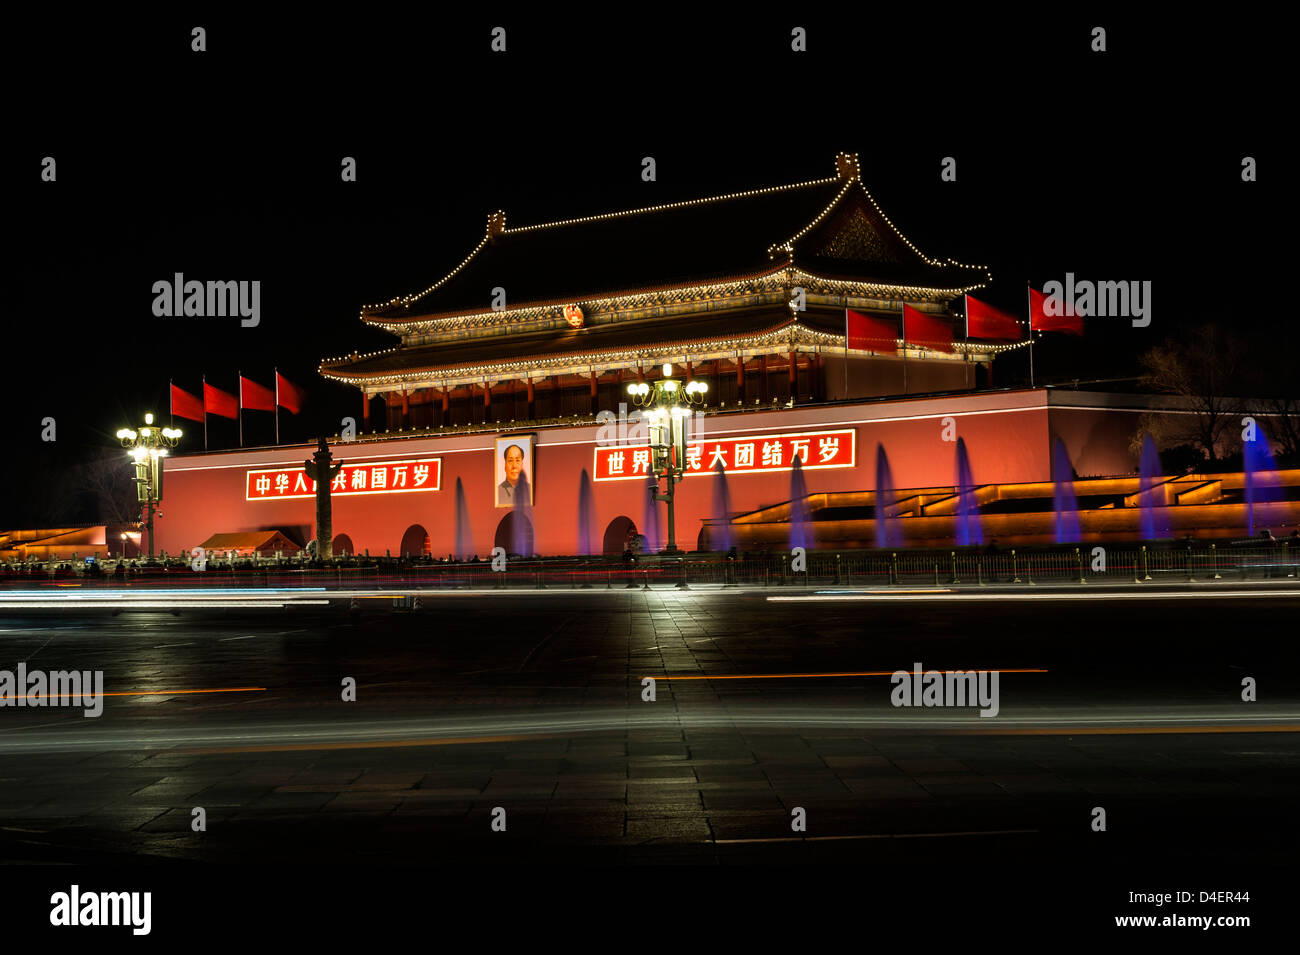 The nightscape of Tiananmen, Beijing - Stock Image